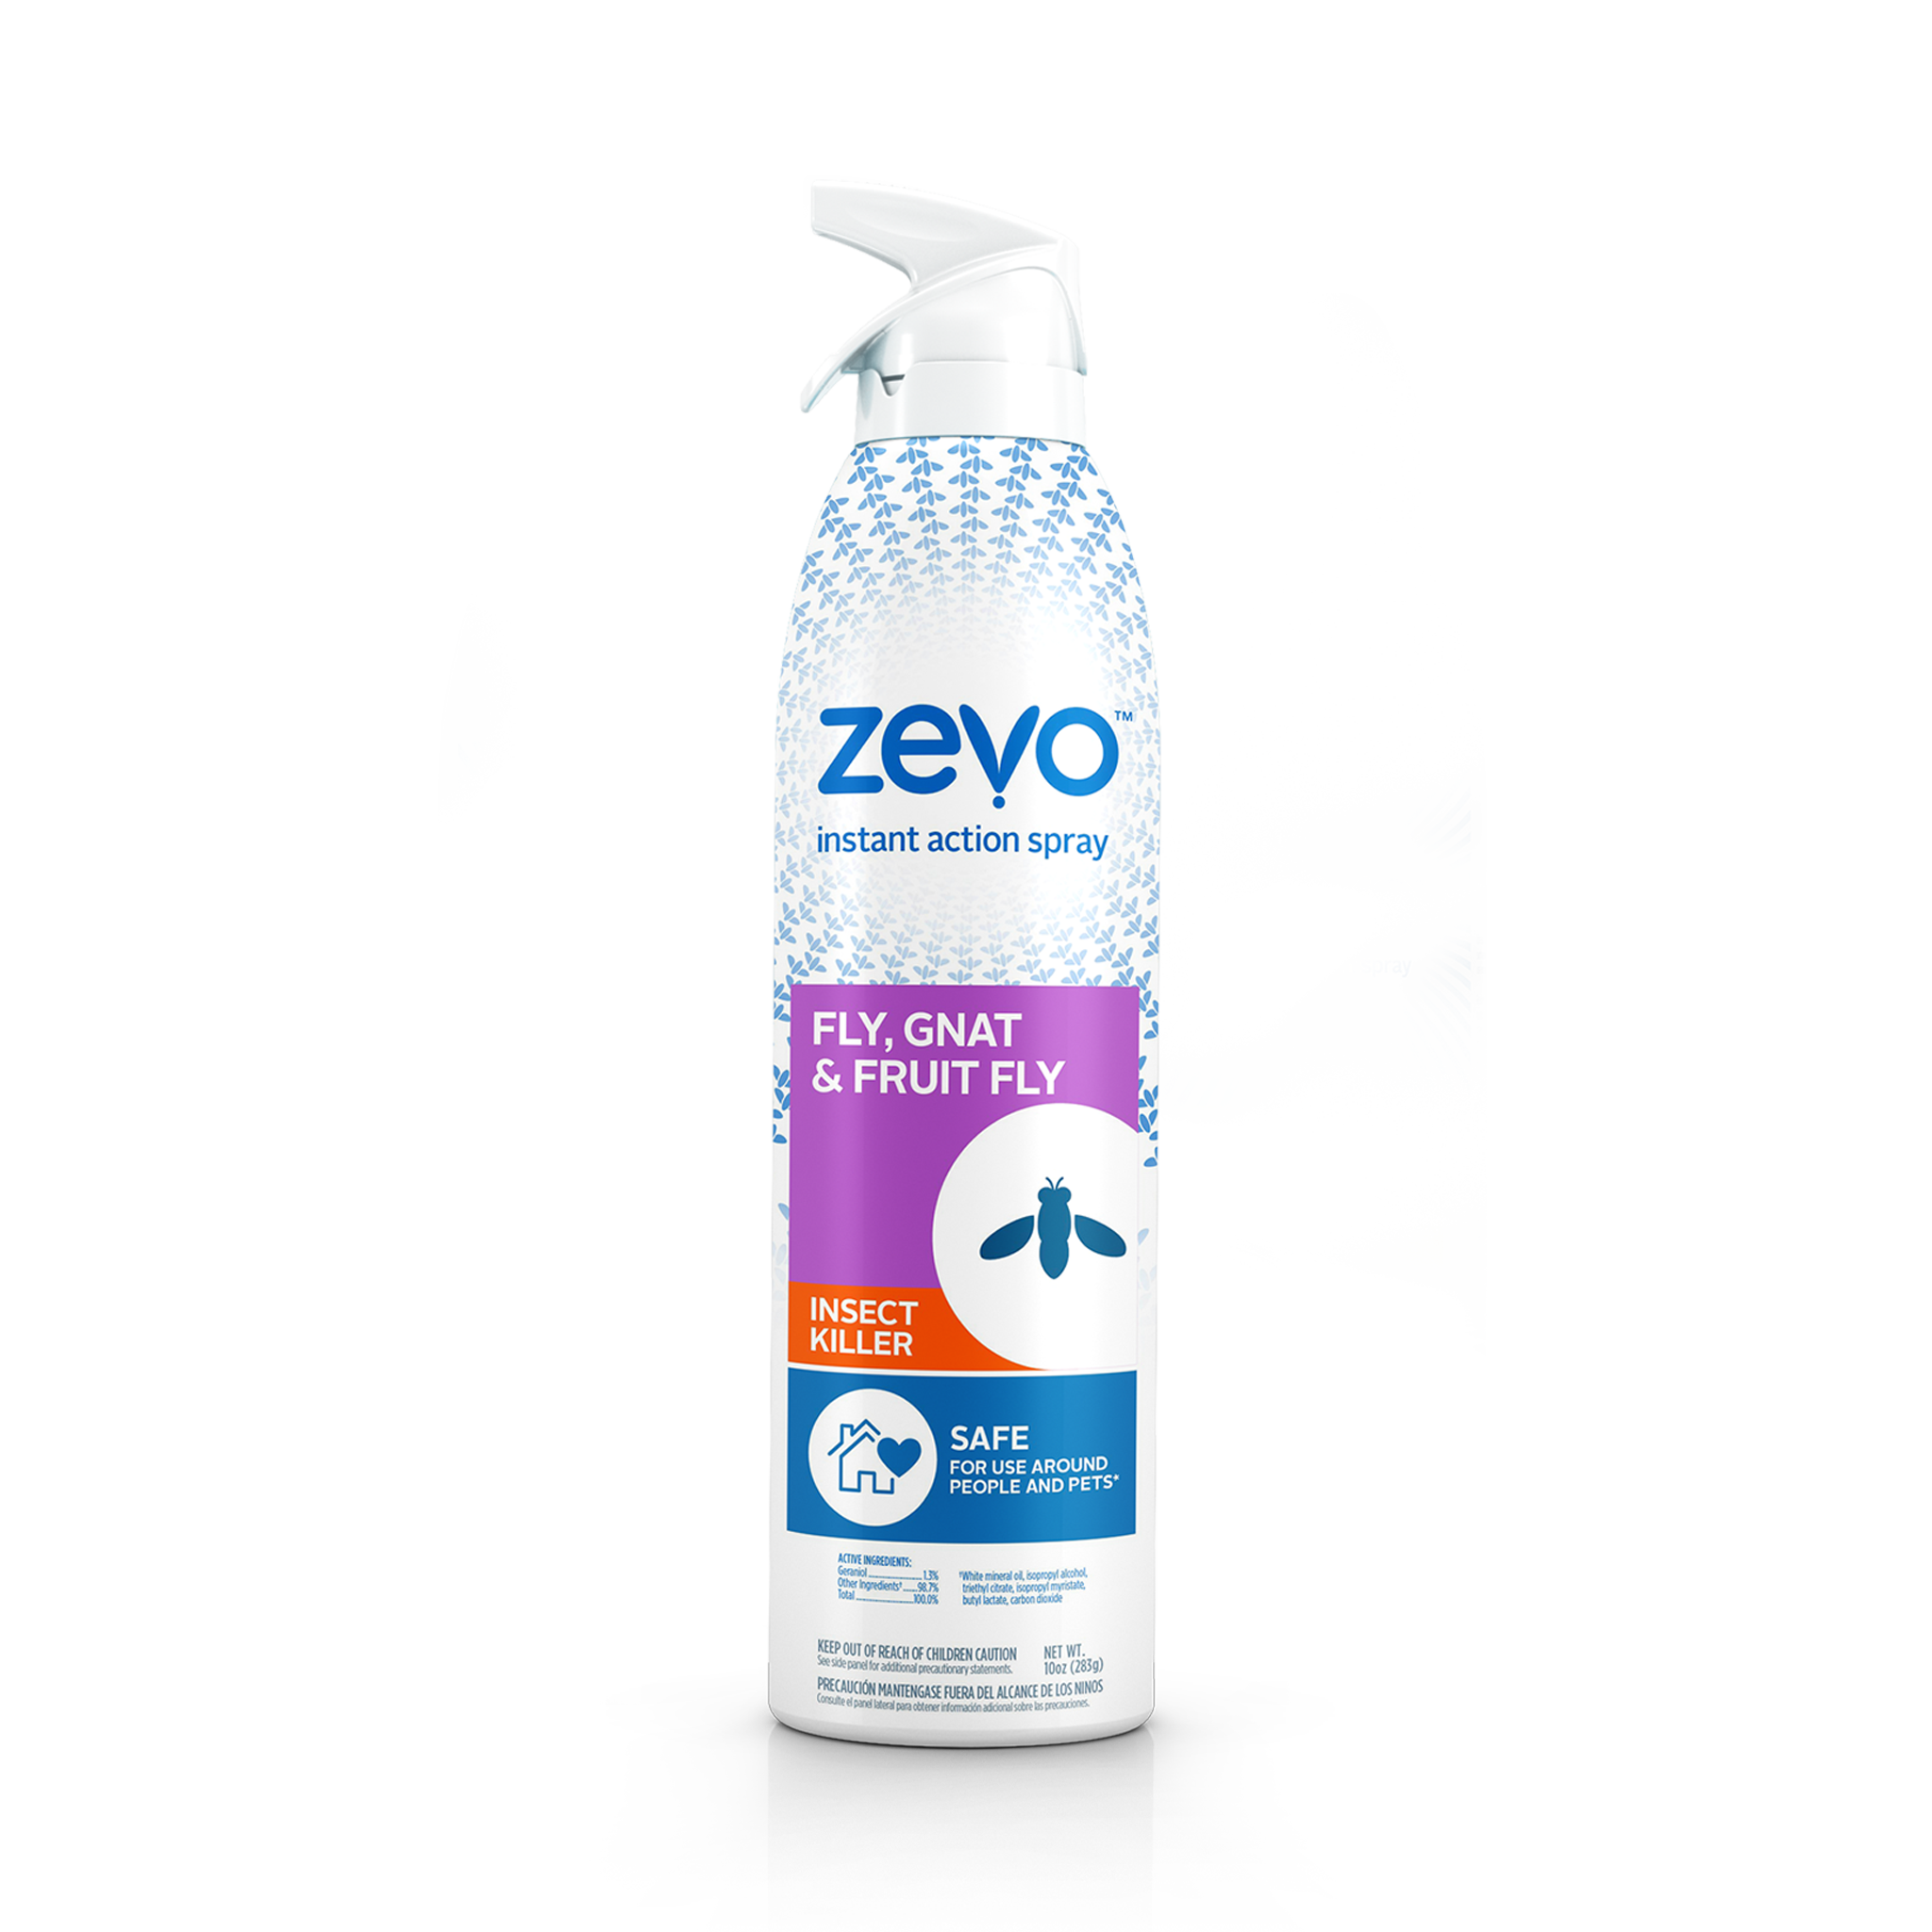 Zevo Fly, Gnat, & Fruit Fly Spray